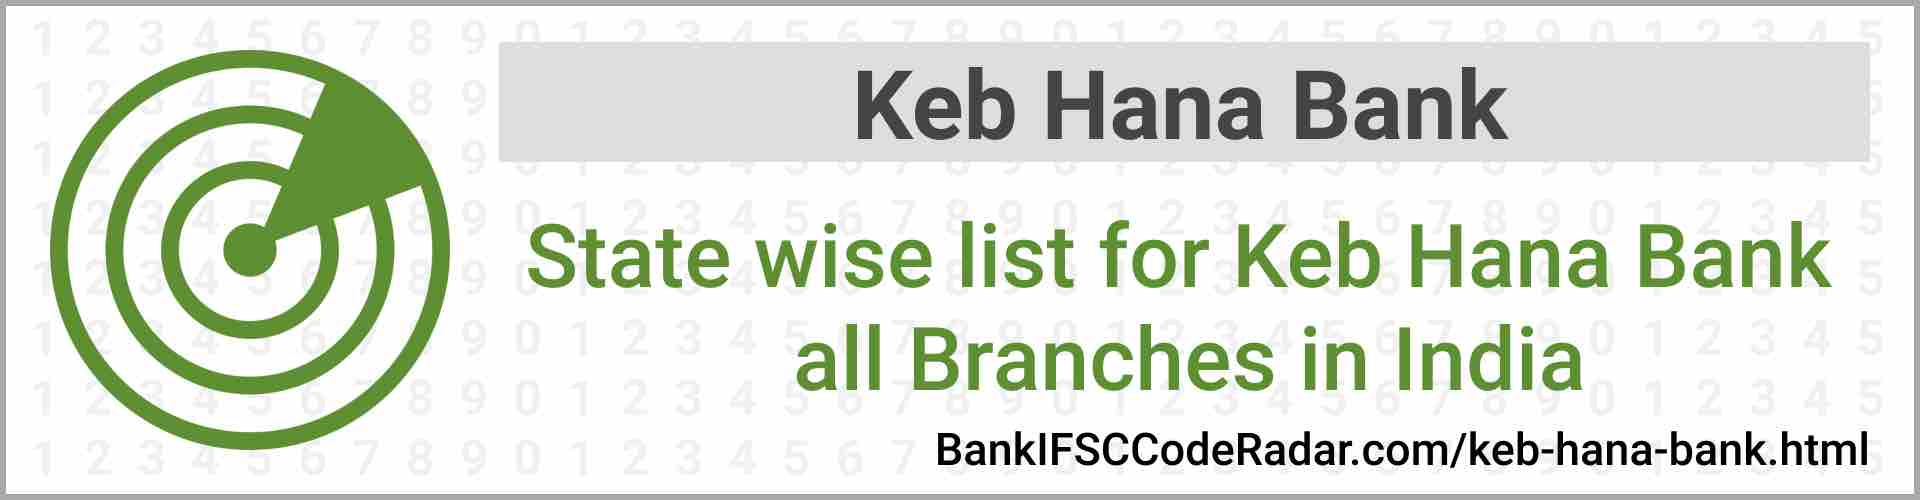 Keb Hana Bank All Branches India